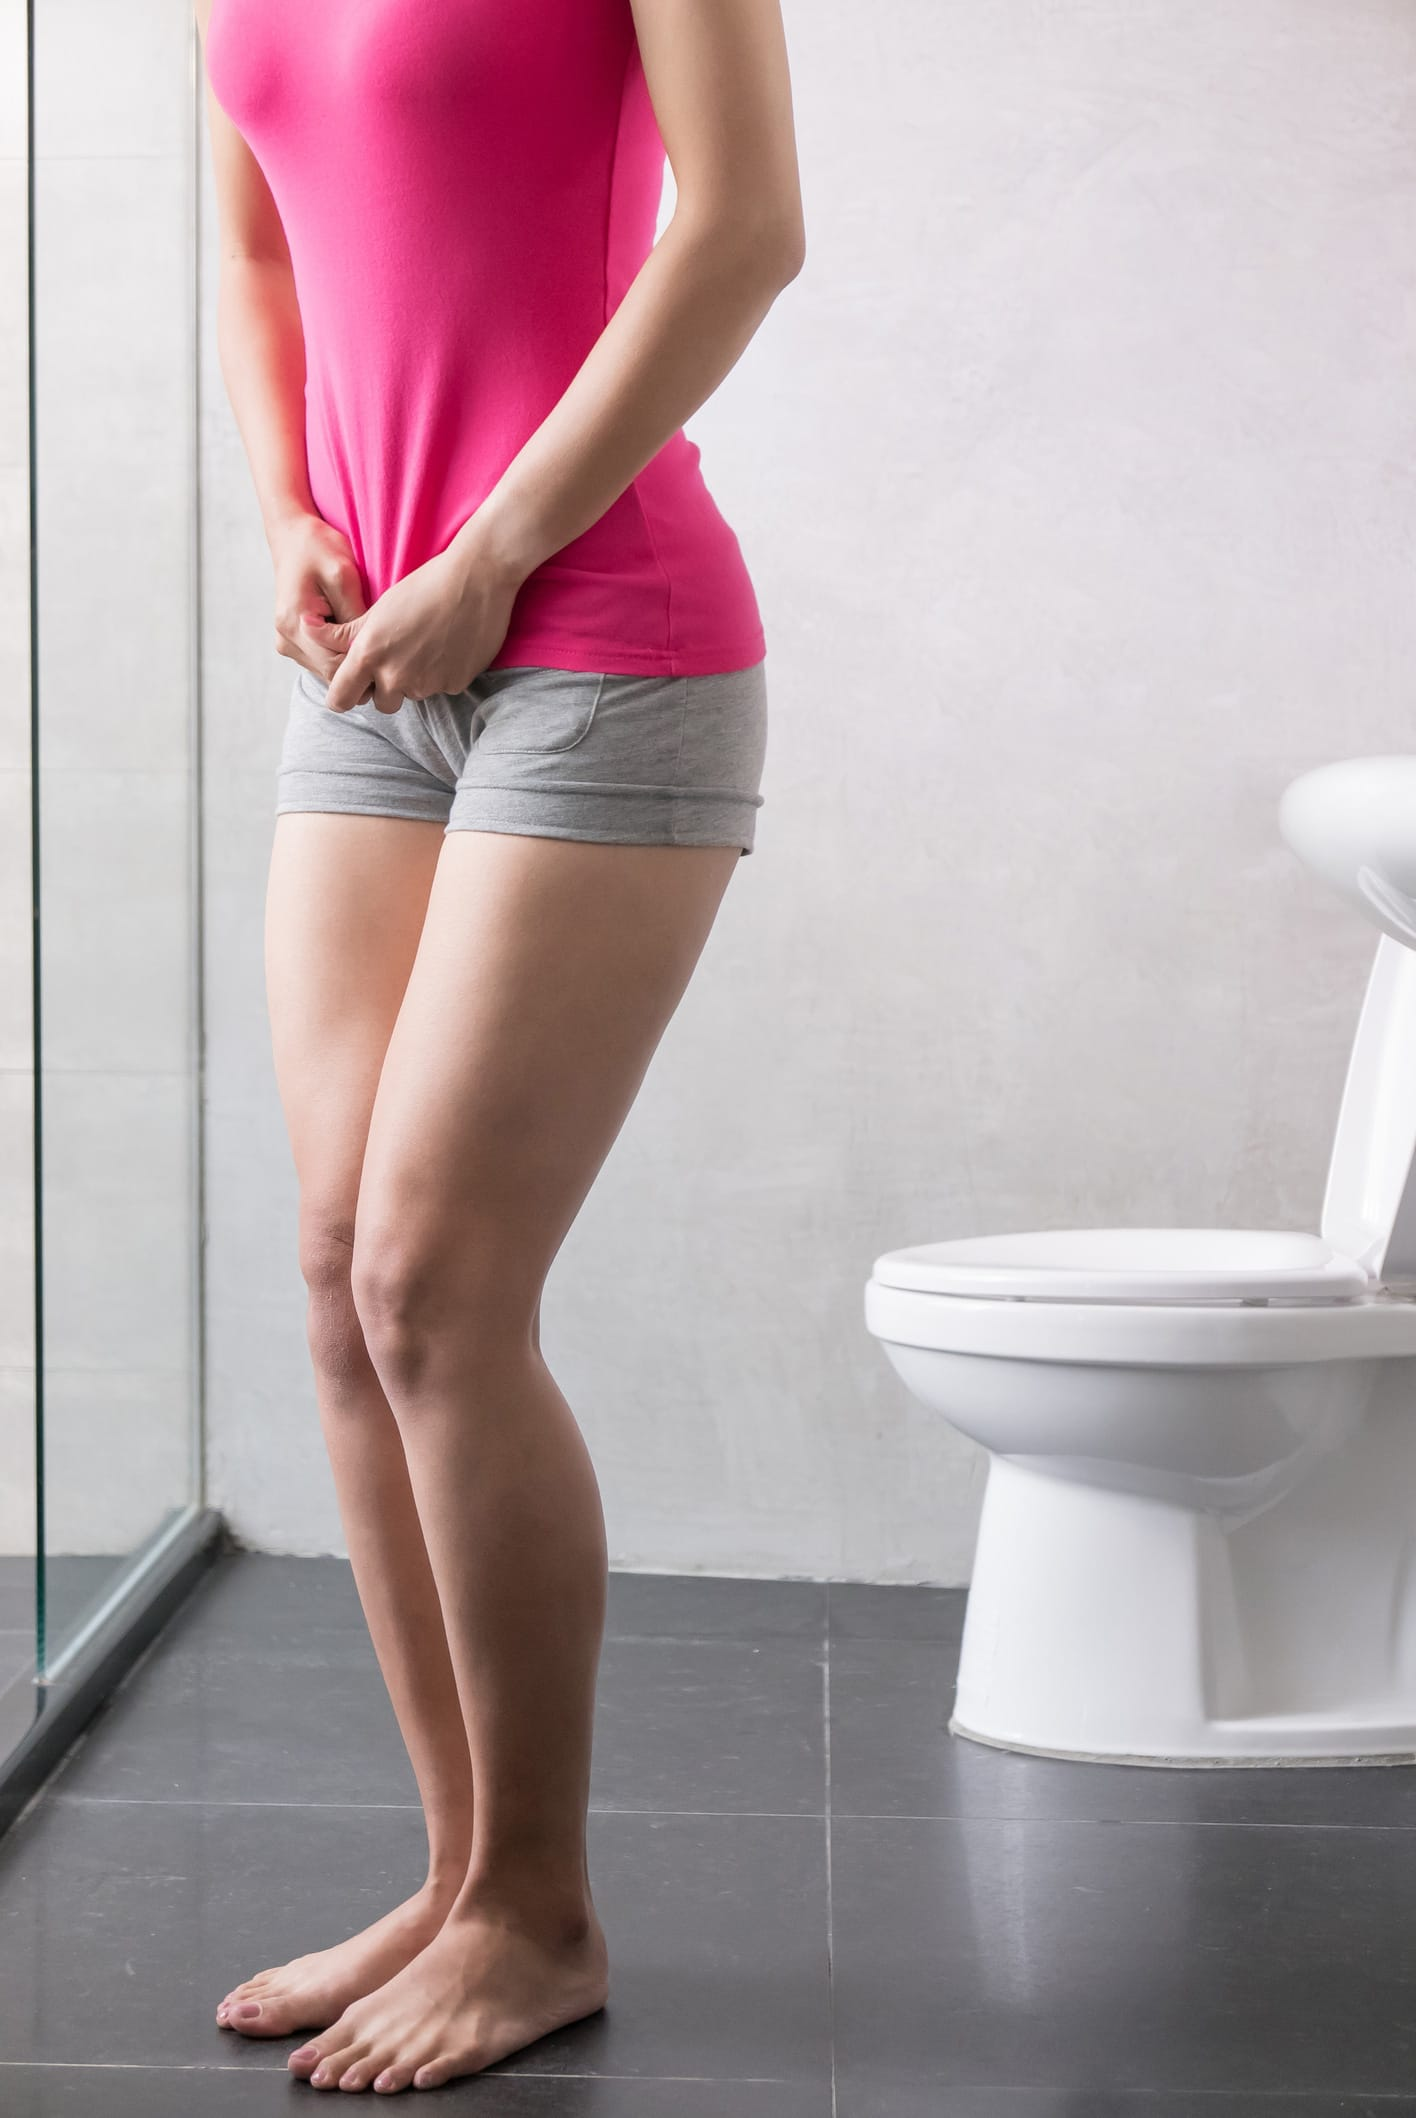 Urinary incontinence: Treatment, causes, types, and symptoms